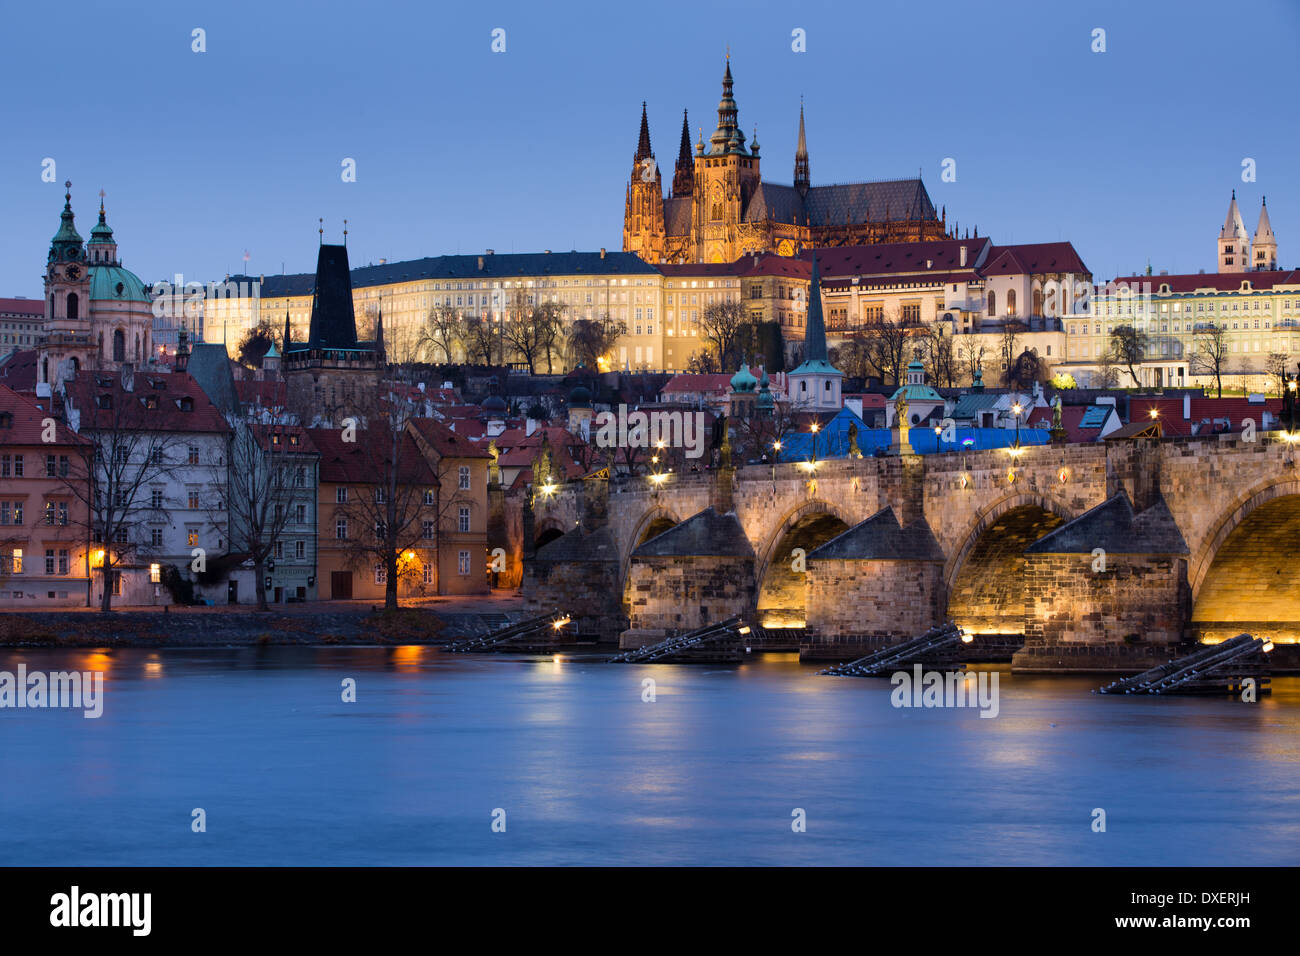 the Castle District, St Vitus Cathedral and the Charles Bridge over the River Vltava at dusk, Prague, Czech Republic Stock Photo